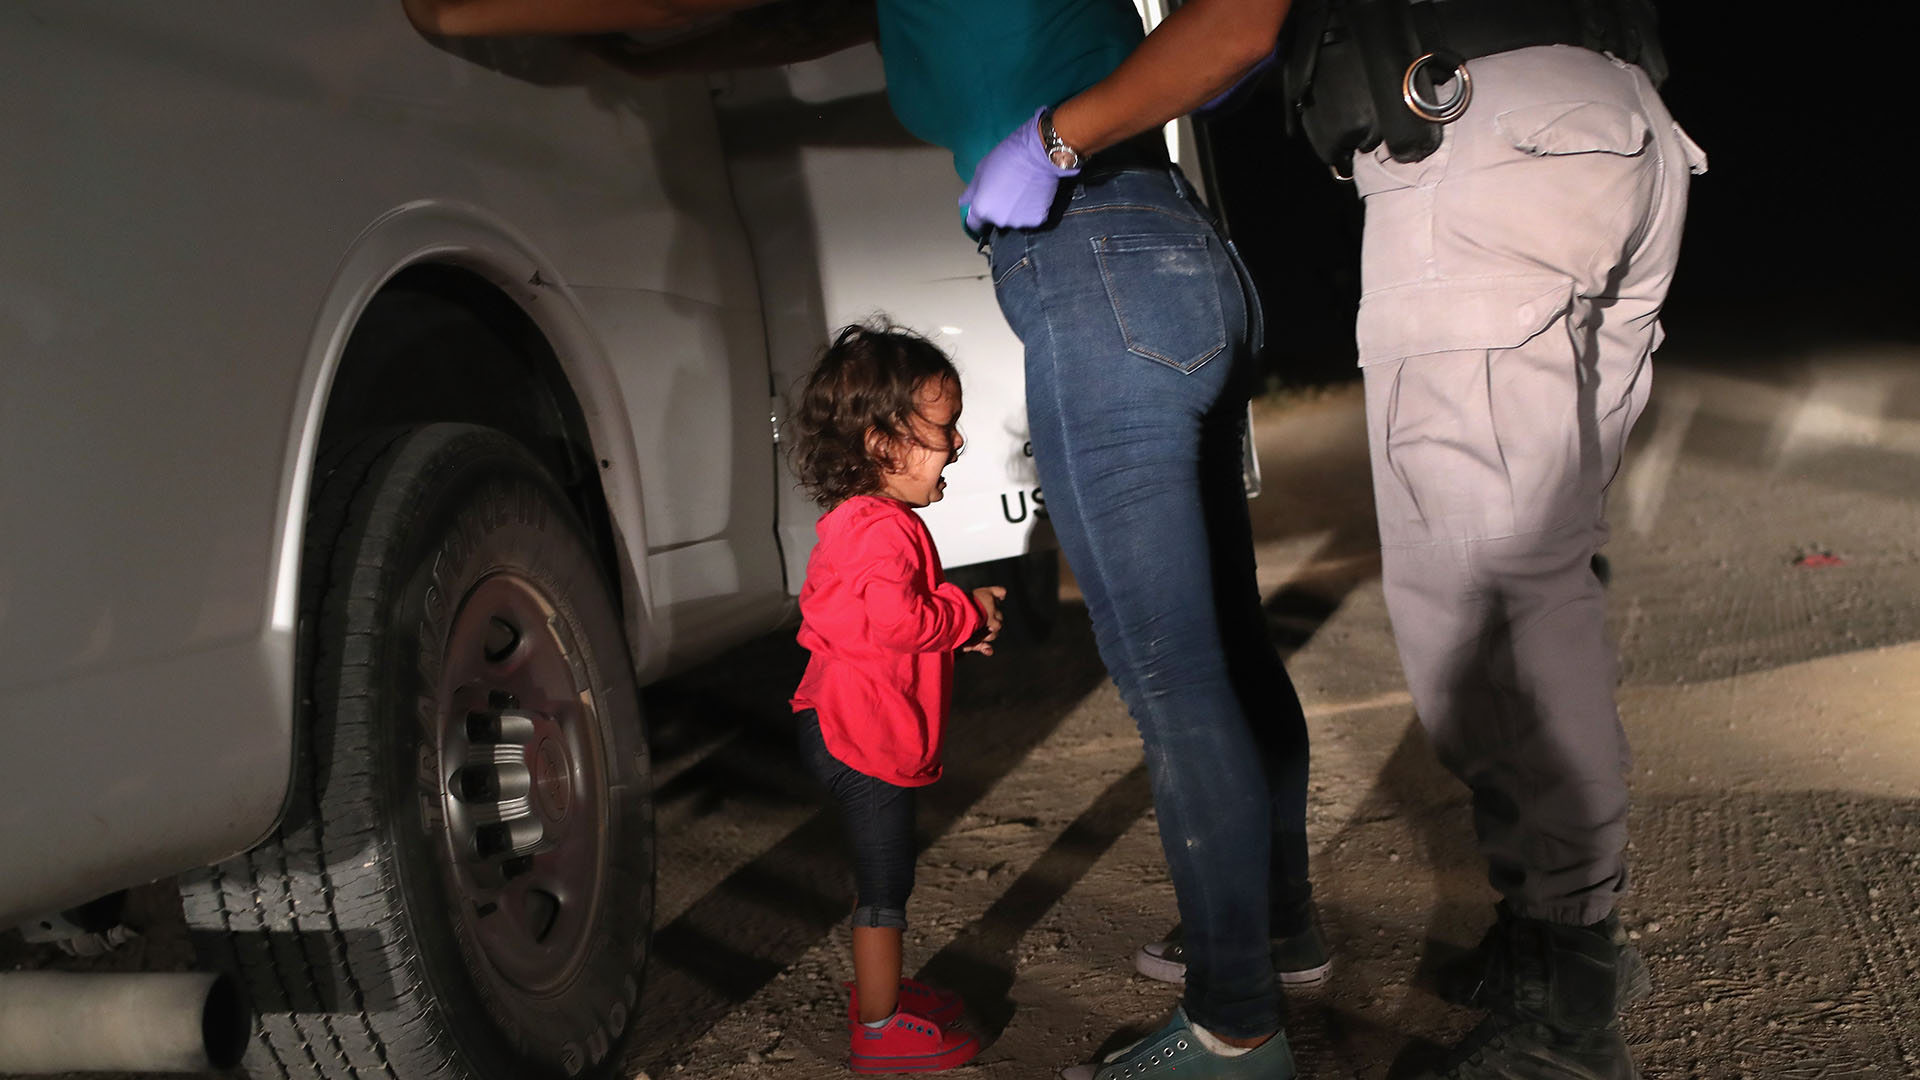 La imagen ganadora del World Press Photo 2019 es del fotógrafo estadounidense John Moore (GETTY IMAGES NORTH AMERICA / AFP)